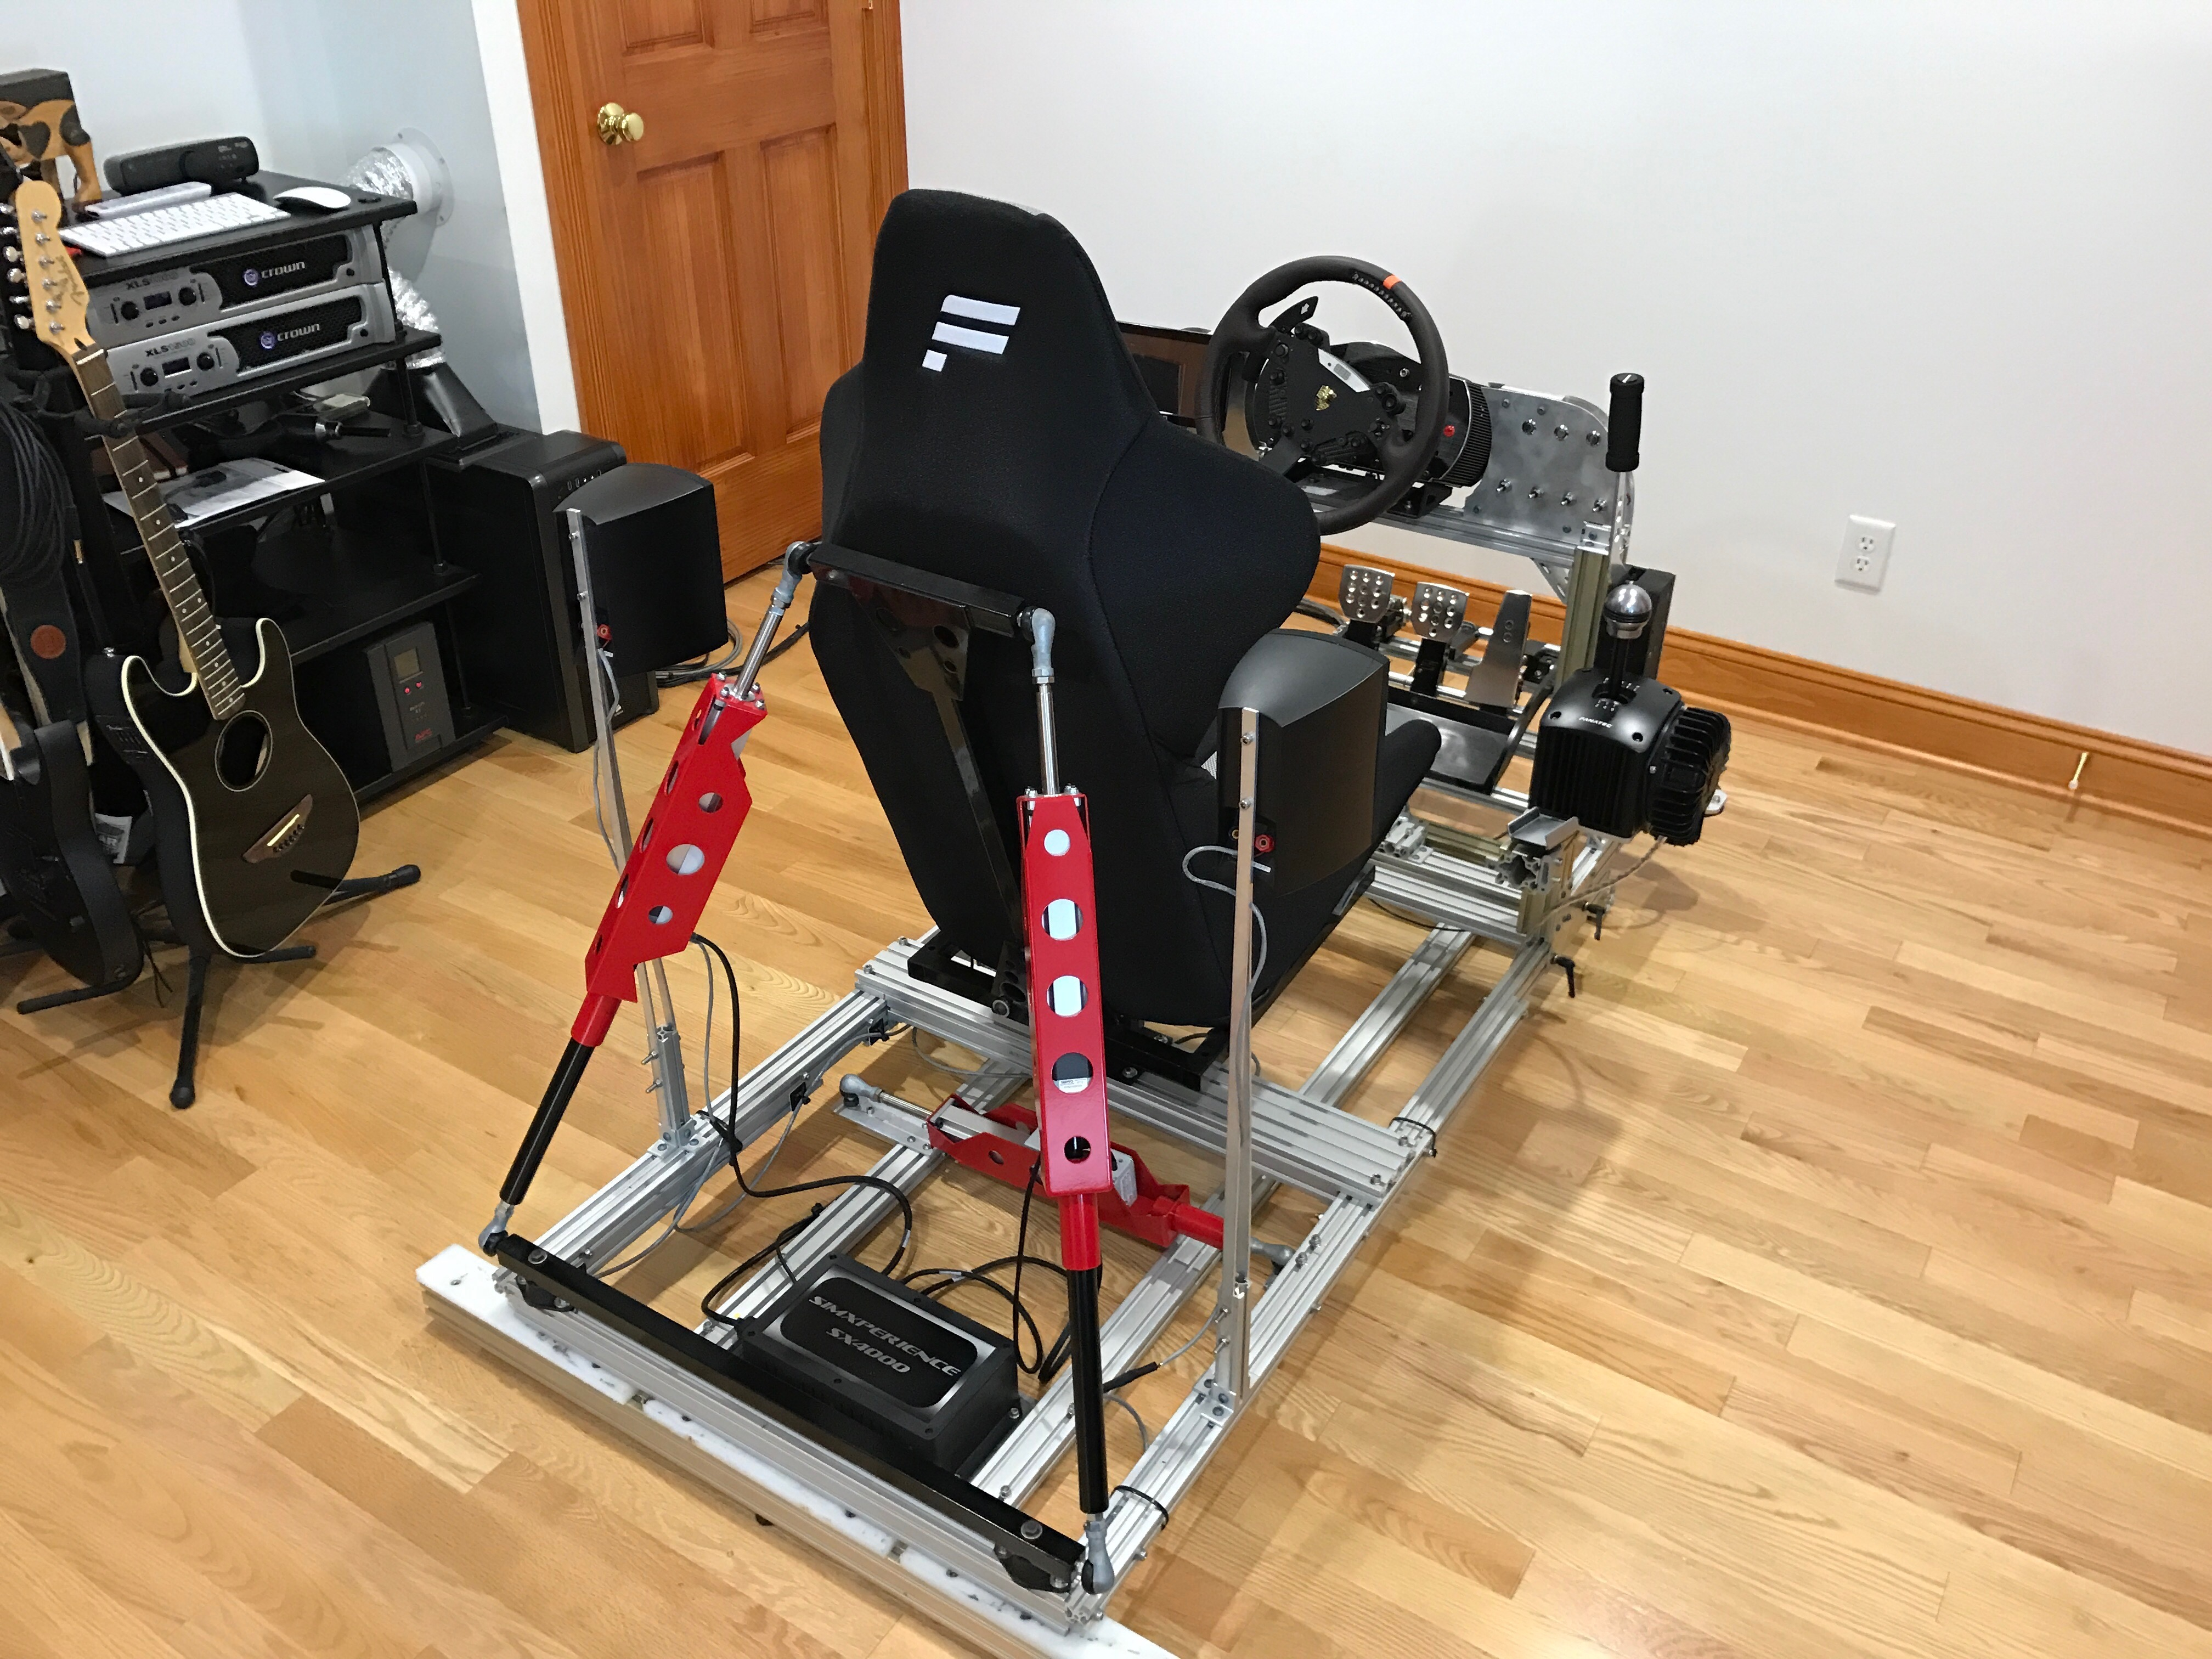 My sim racing motion rig version 2 | Daniel Chote's Project Blog